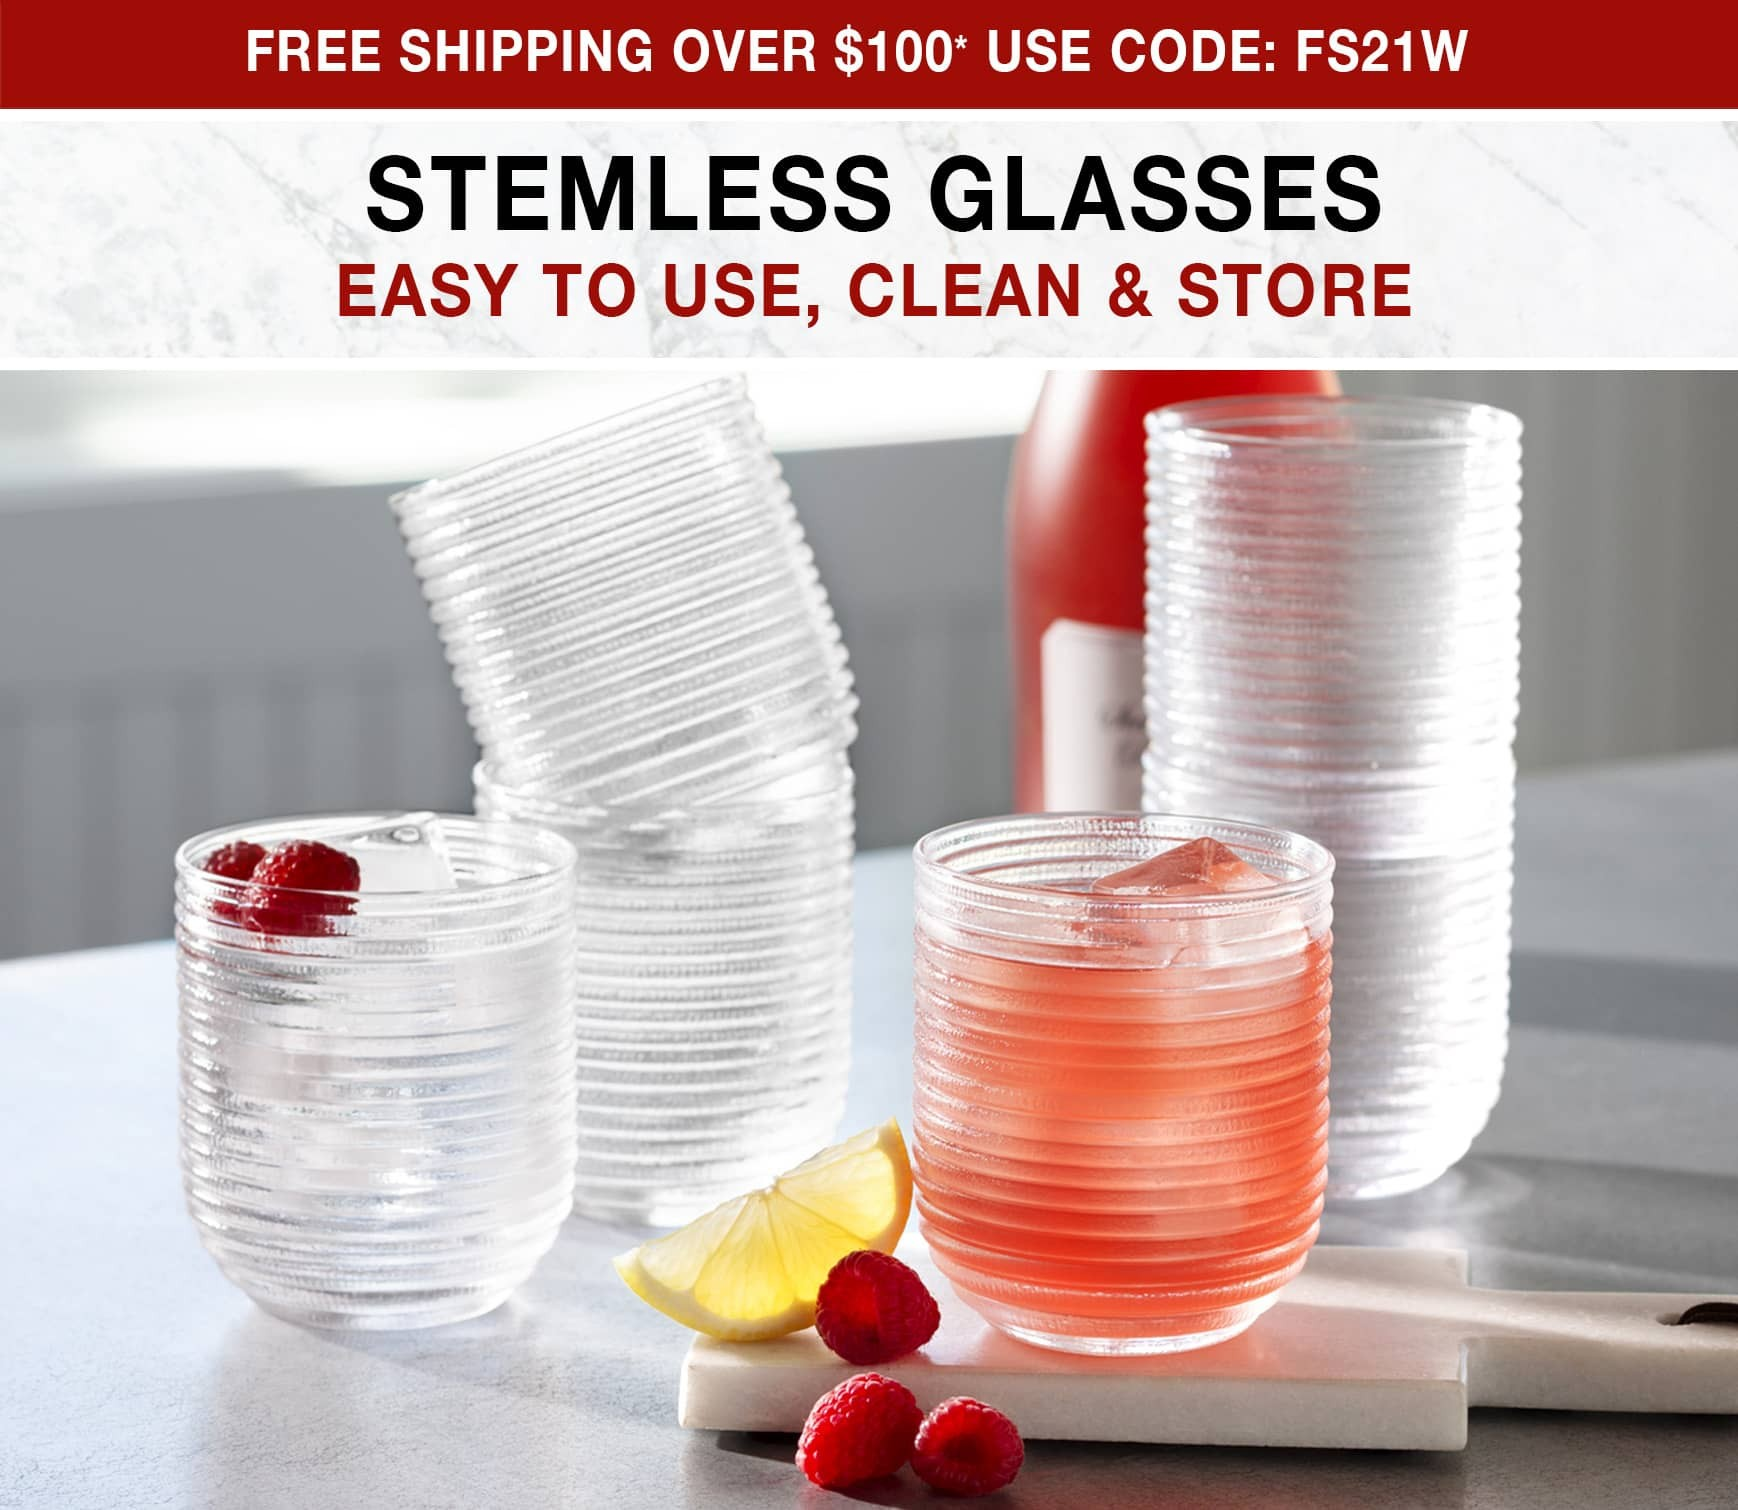 Stemless Glasses - Free Shipping Over $100* Use Code FS21W